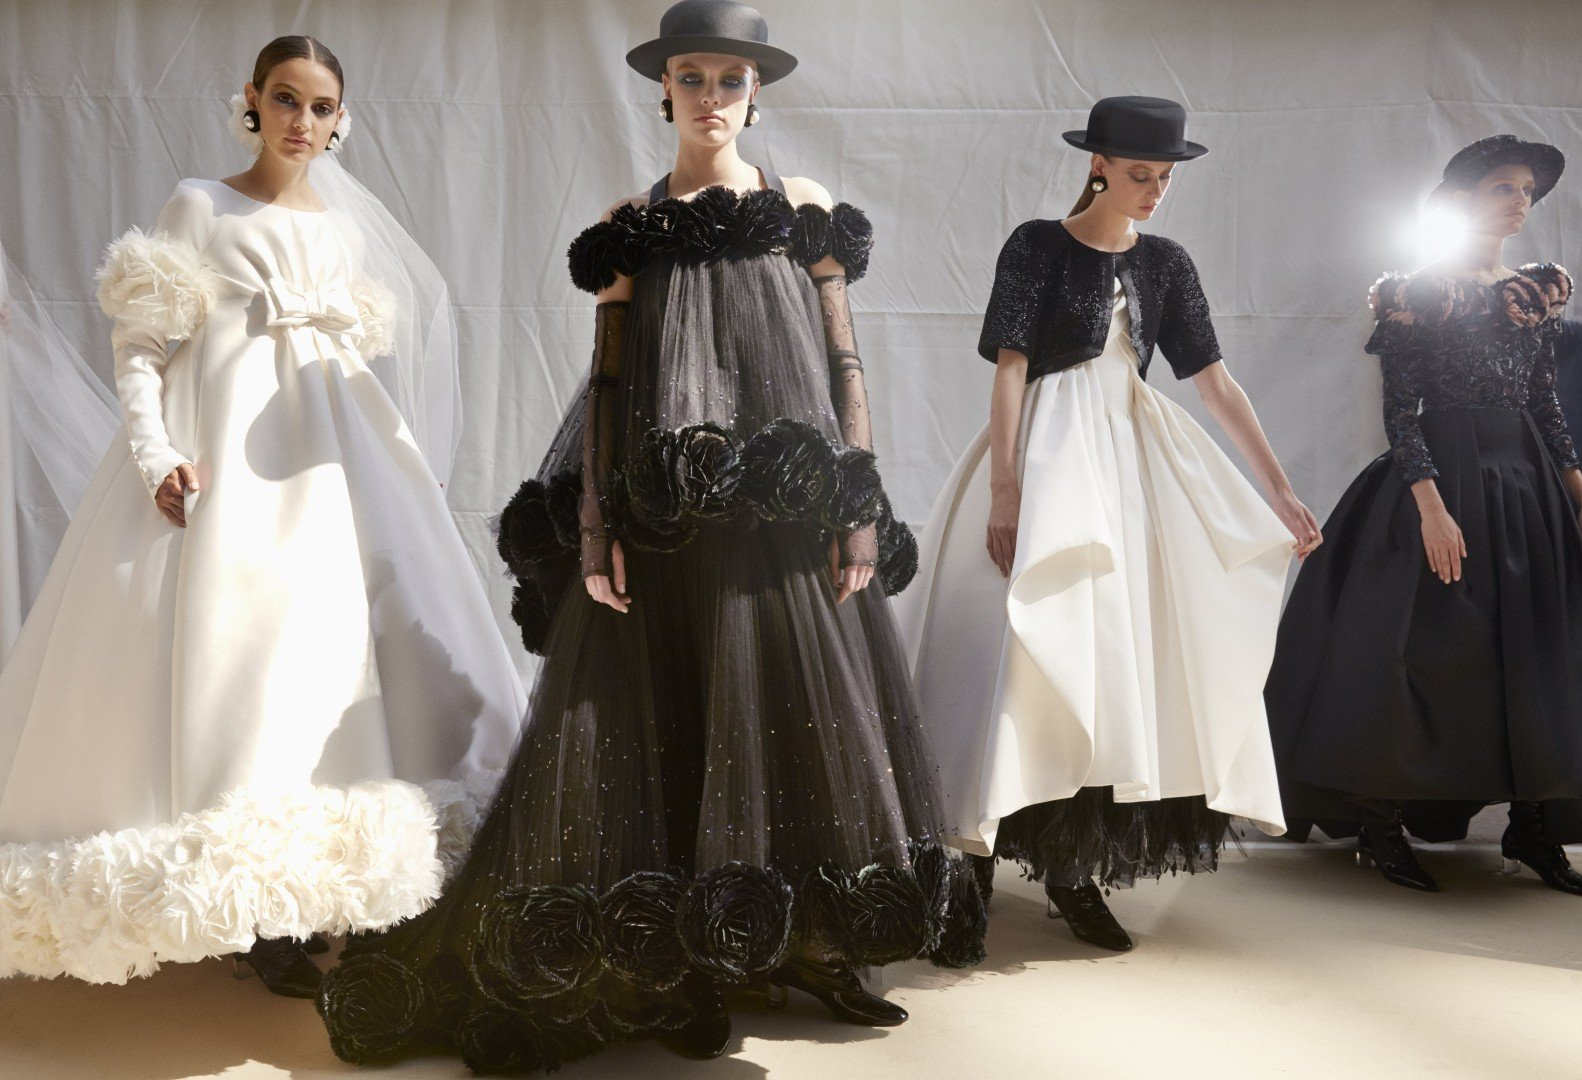 0dc4fadf4d3bcd Chanel's exquisite haute couture preserves craftsmanship and unites  heritage artisans | South China Morning Post